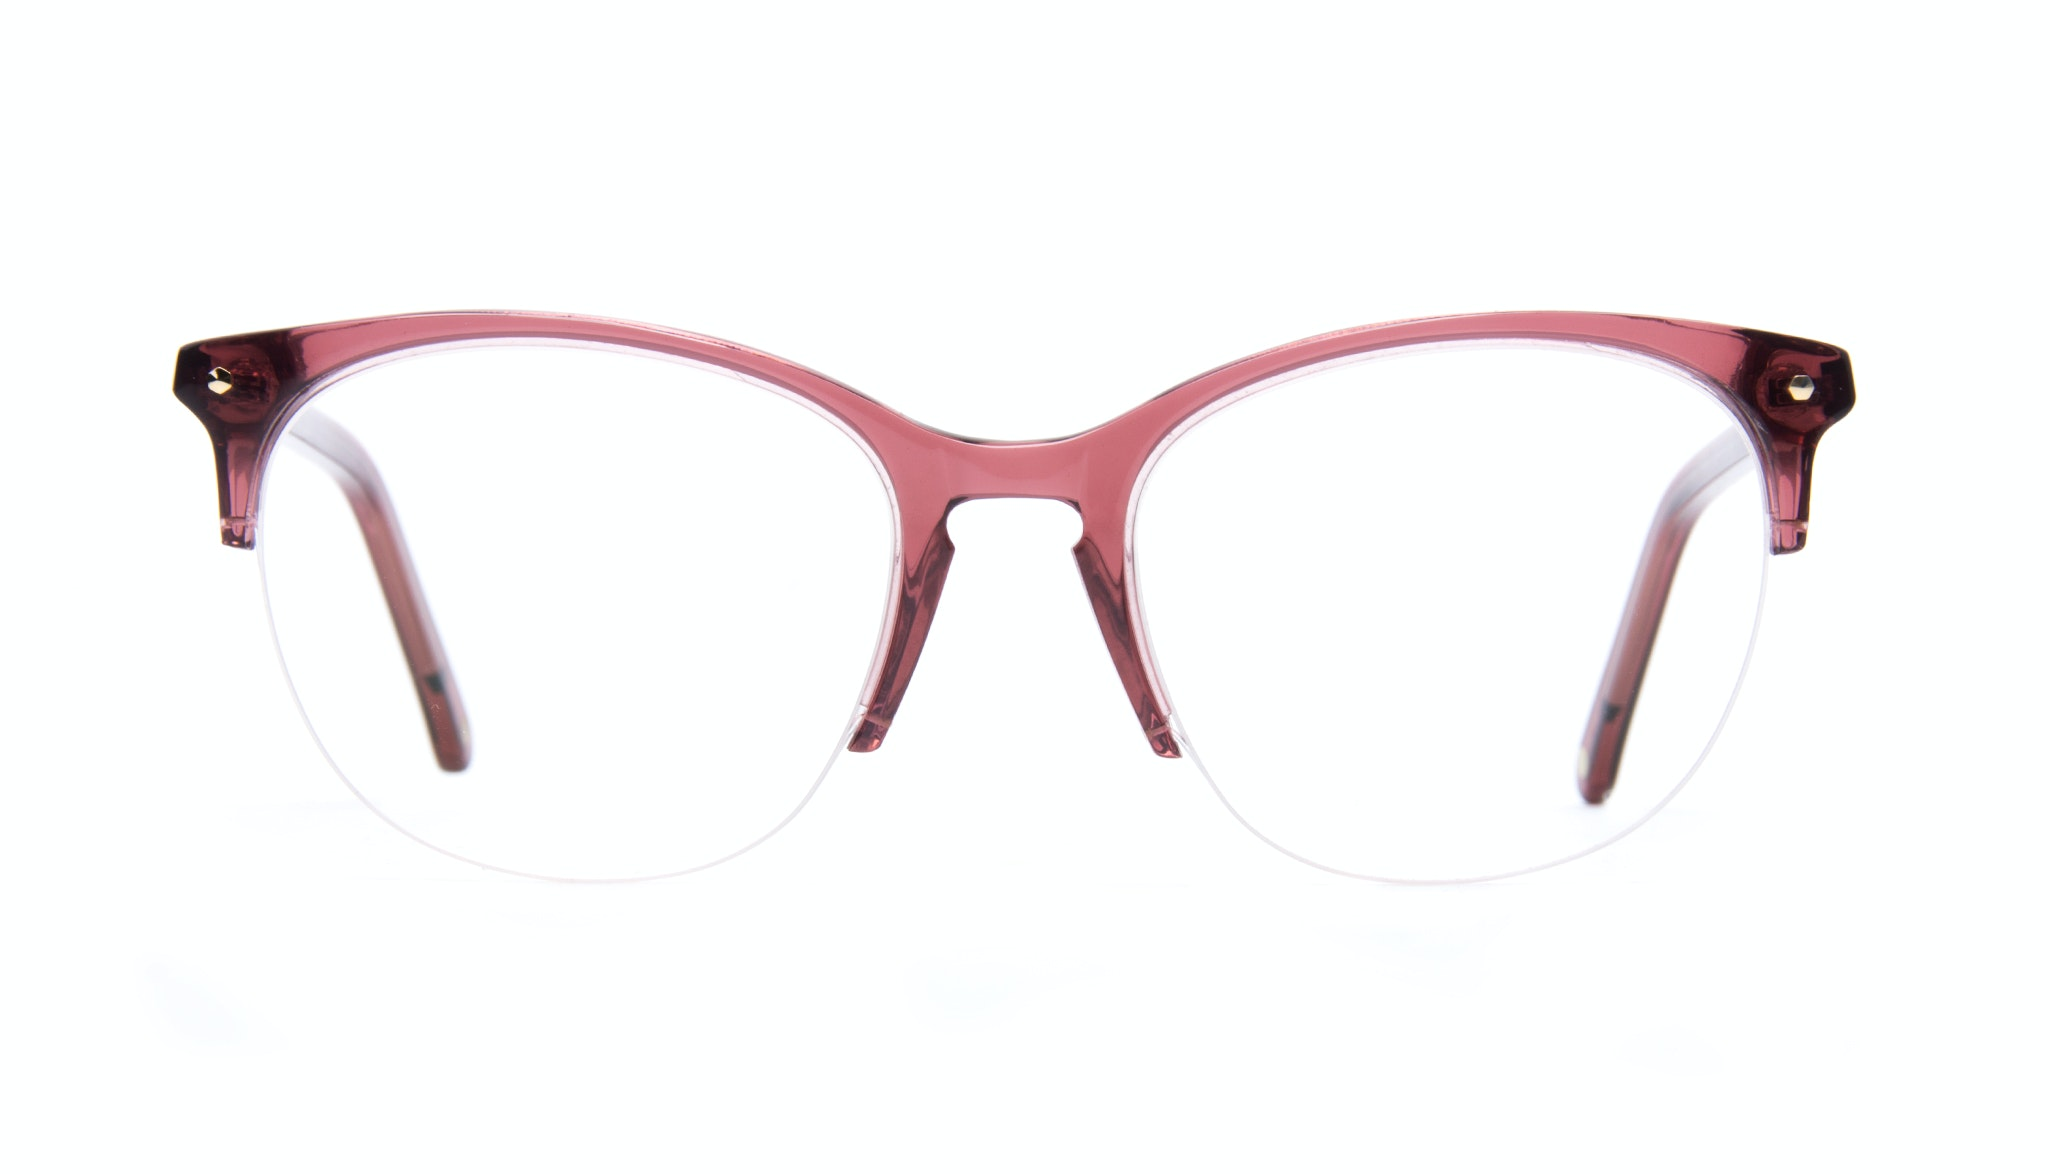 Affordable Fashion Glasses Rectangle Square Round Semi-Rimless Eyeglasses Women Nadine Light Winegum Front